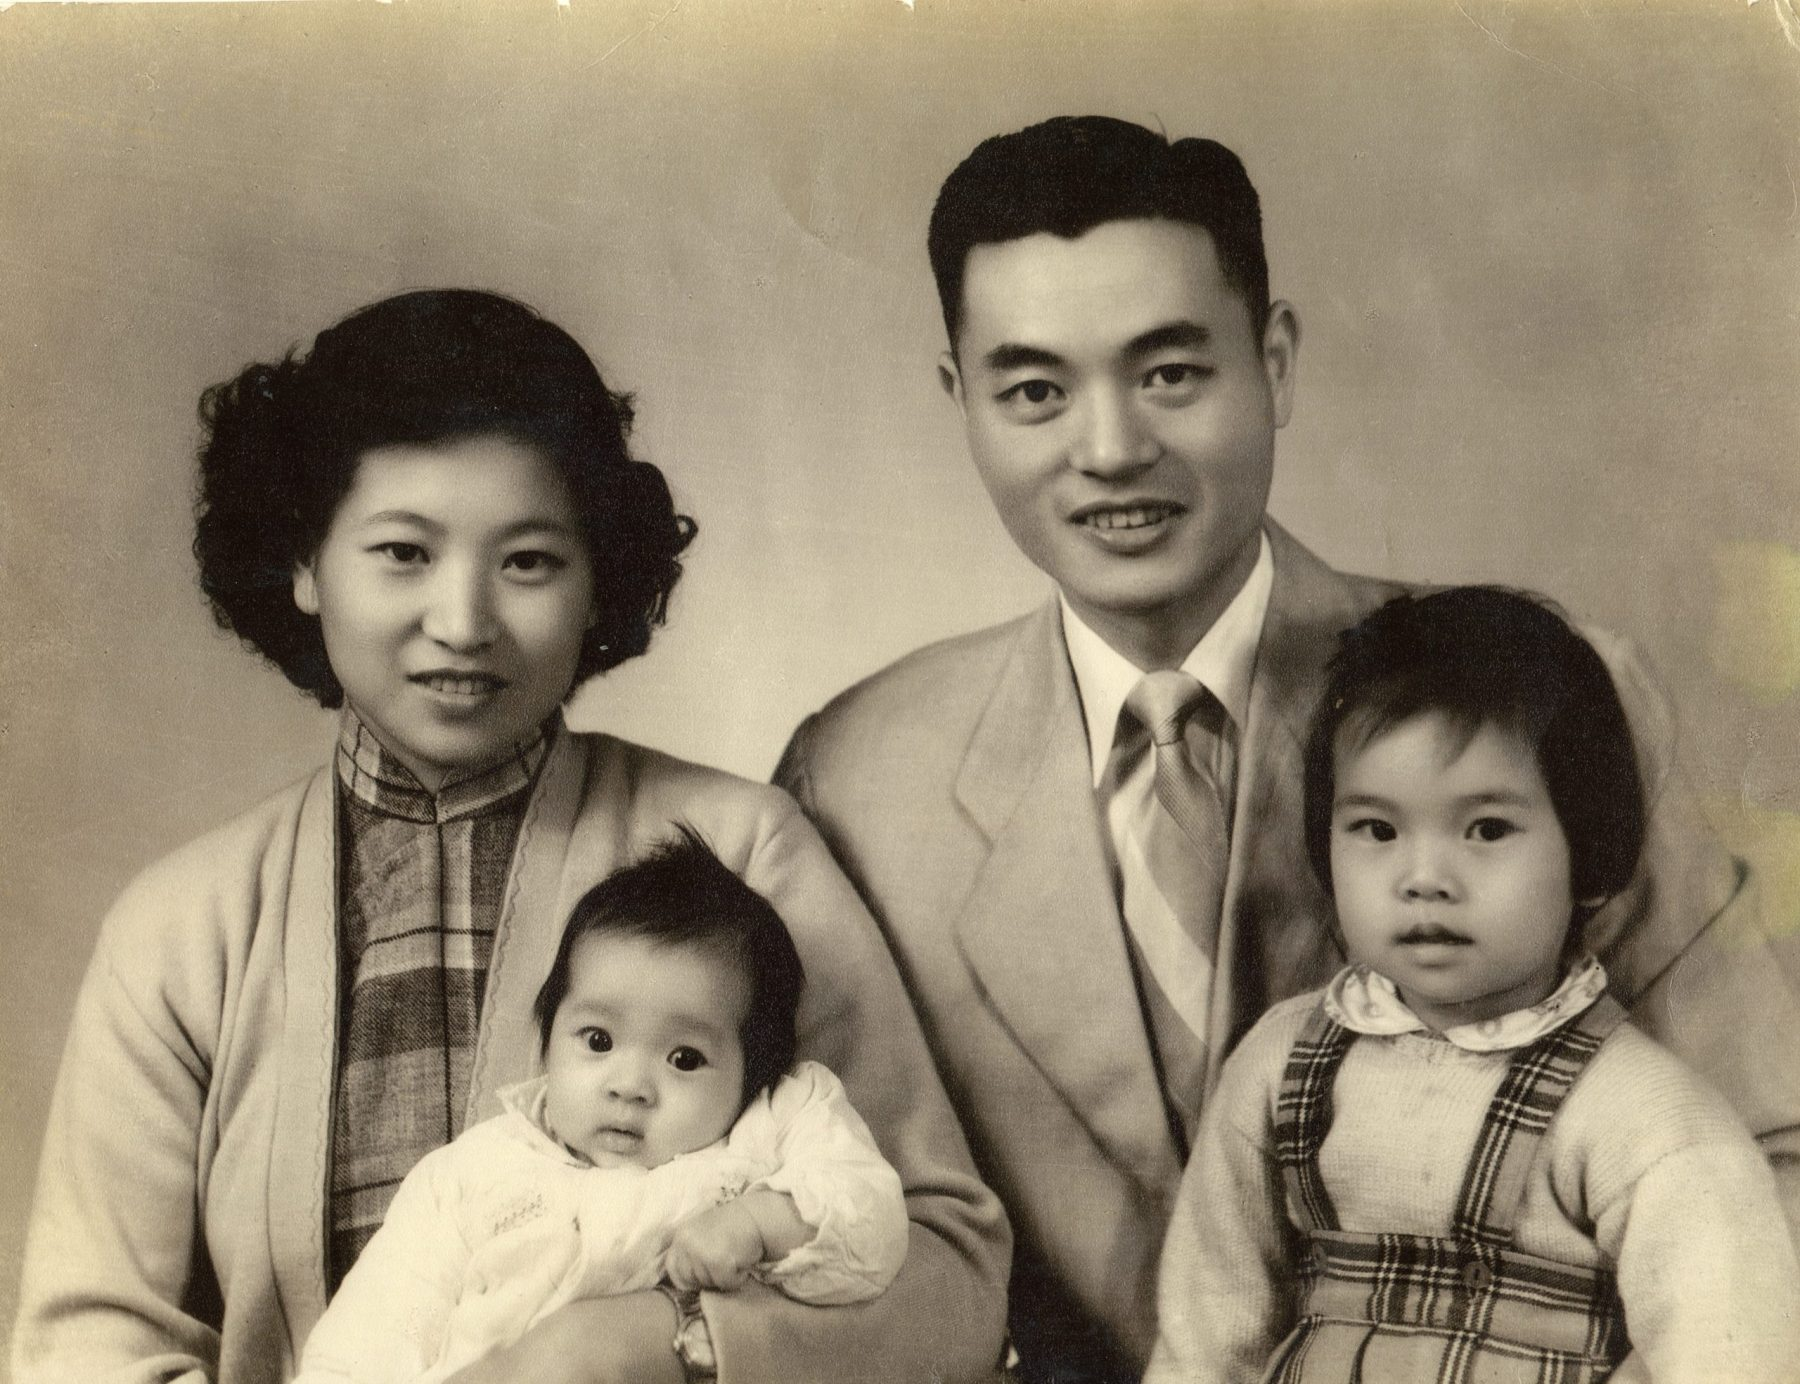 Future U.S. Secretary of Labor and Transportation Elaine L. Chao with her parents Dr. and Mrs. James S. C. Chao and sister Jeanette.